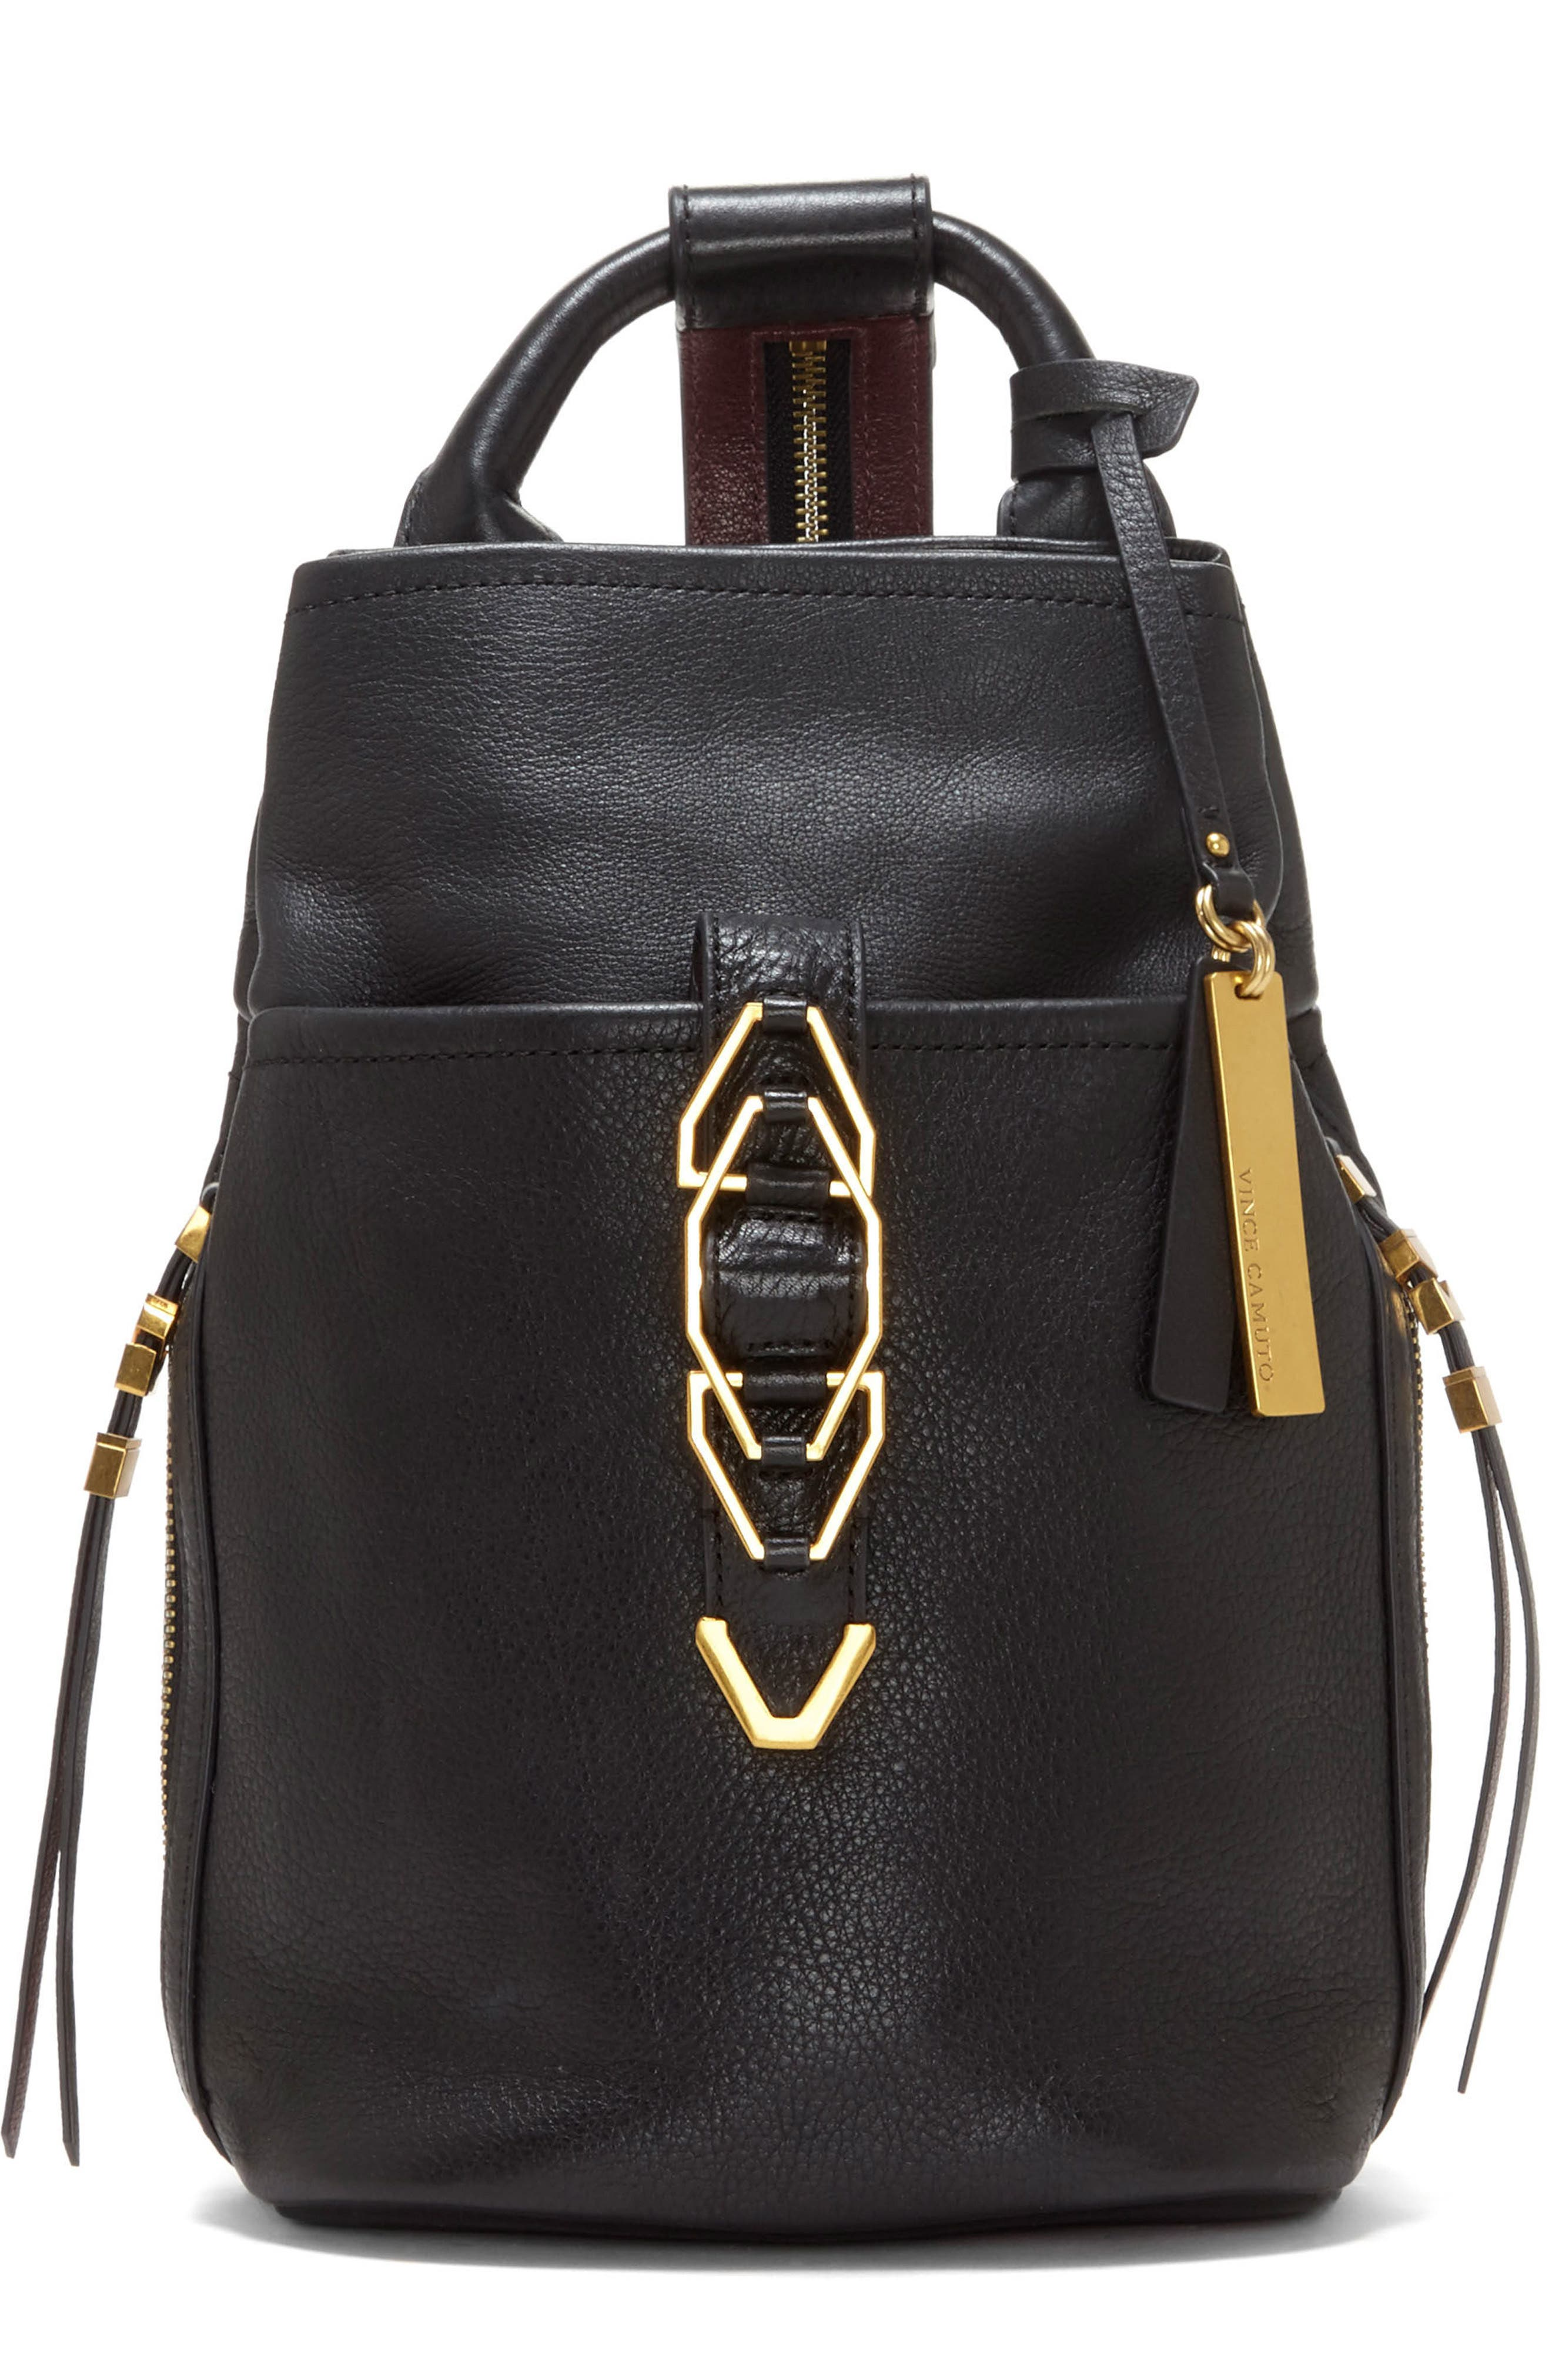 Vince Camuto Small Luk Adjustable Leather Backpack